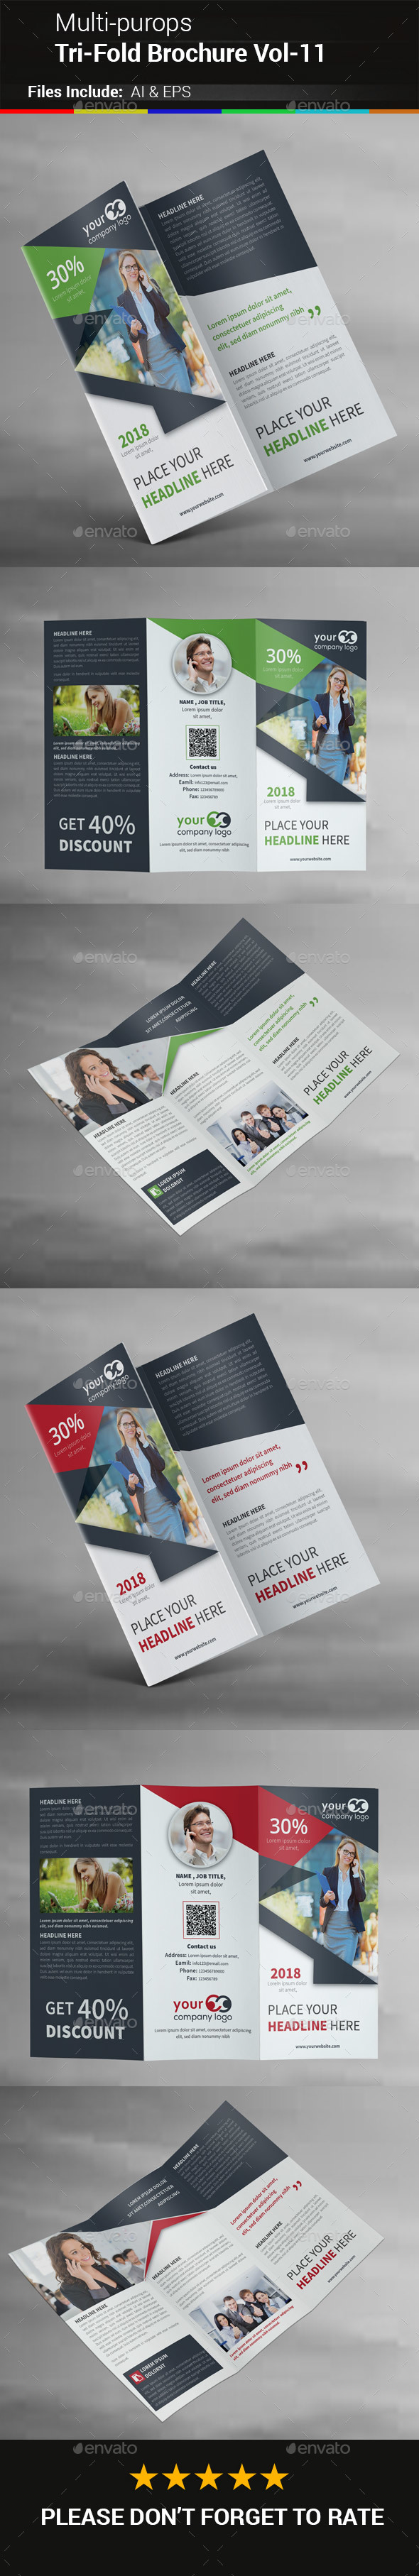 Multipurpose Business Tri-Fold Brochure Vol-11 - Corporate Brochures